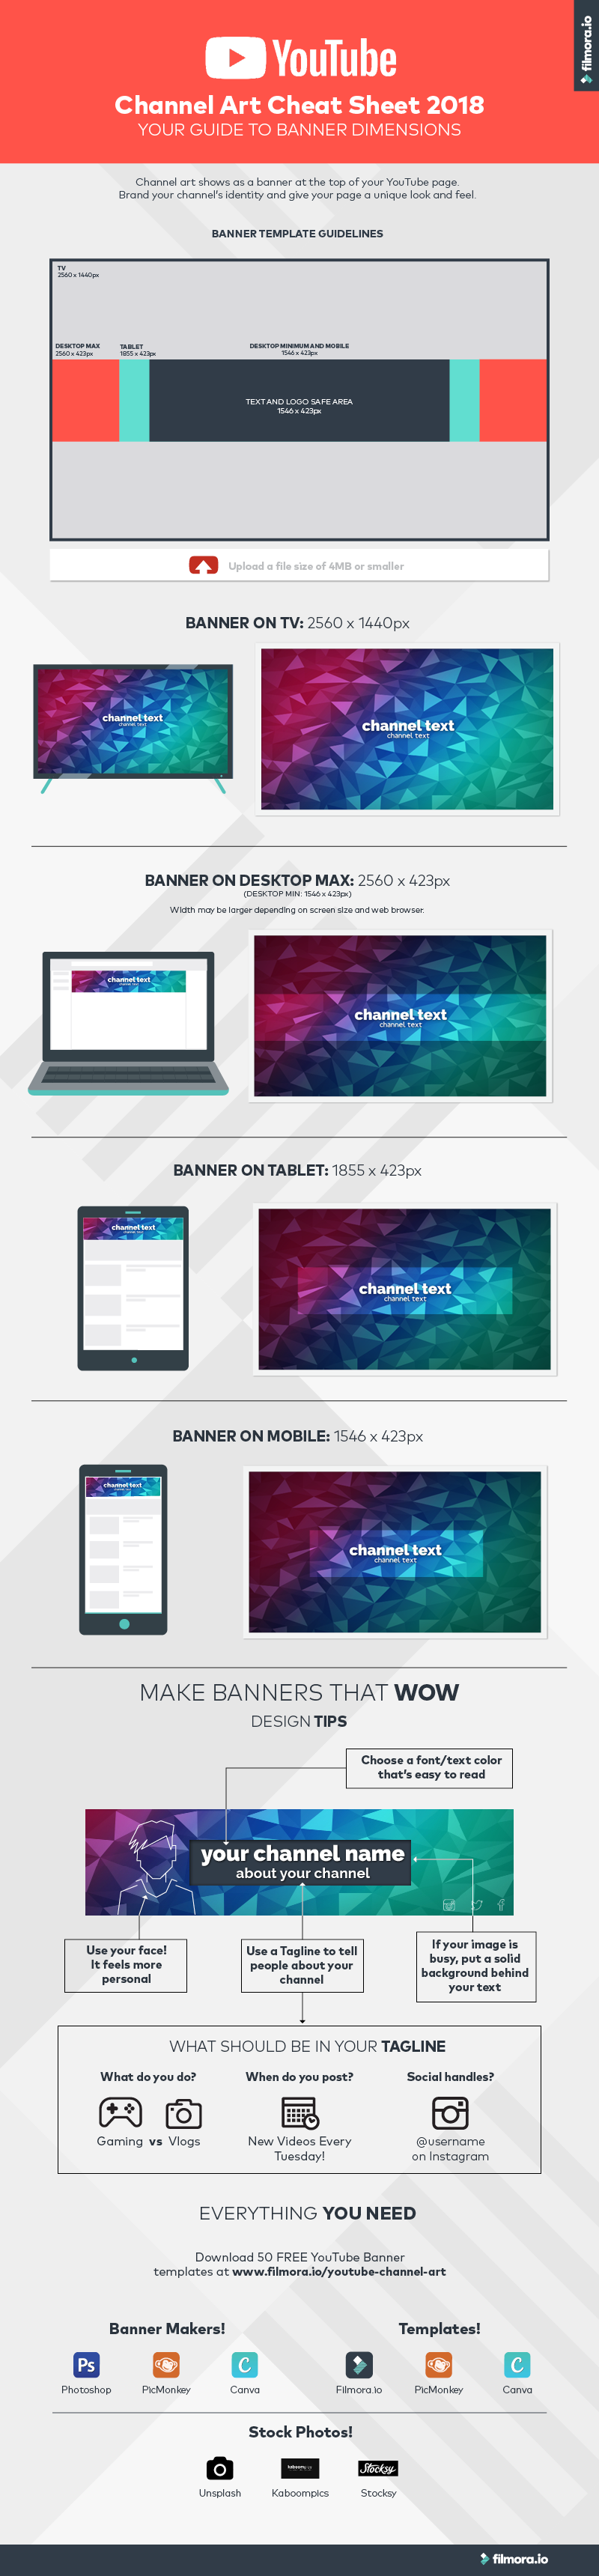 YouTube Channel Art Cheat Sheet 2018